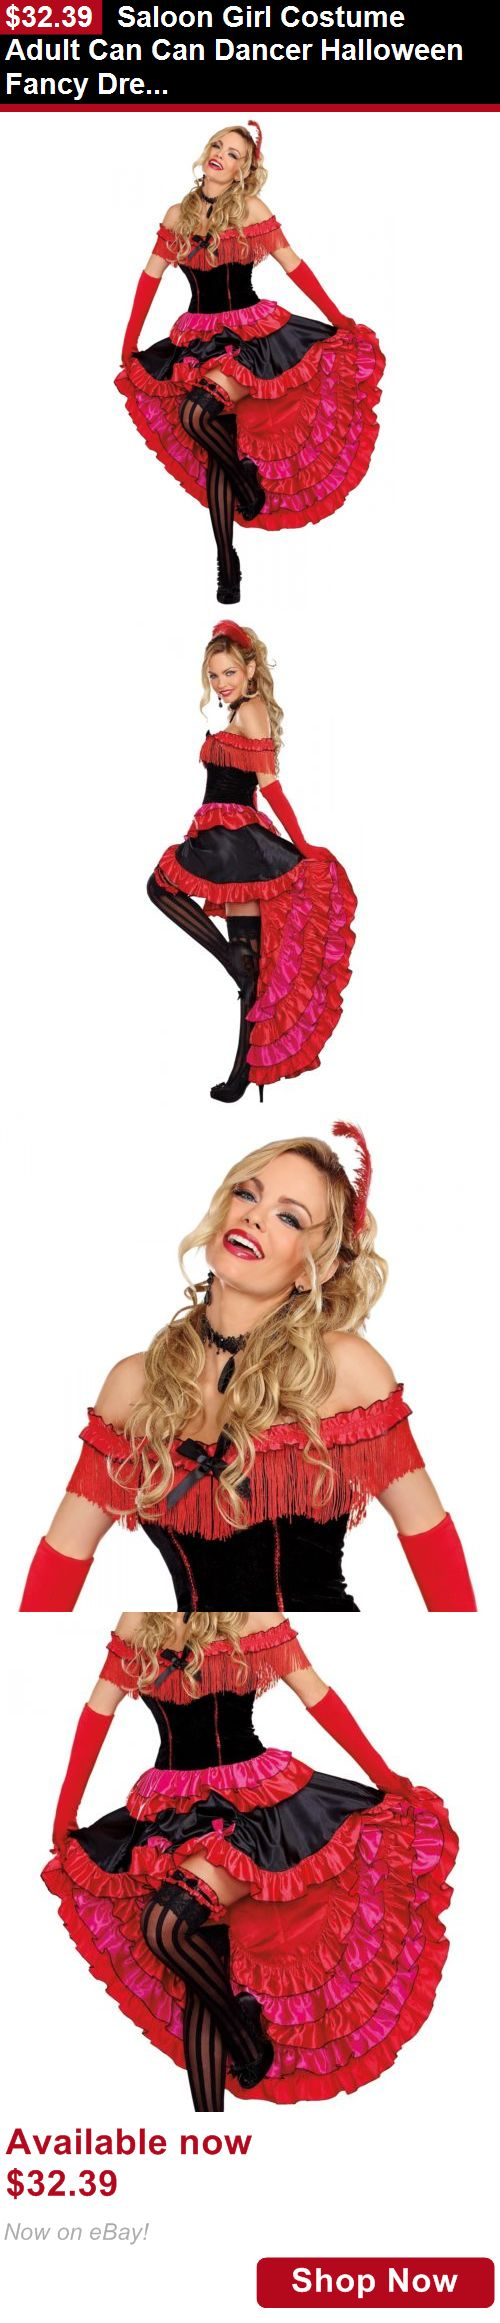 Costumes and reenactment attire: Saloon Girl Costume Adult Can Can Dancer Halloween Fancy Dress BUY IT NOW ONLY: $32.39